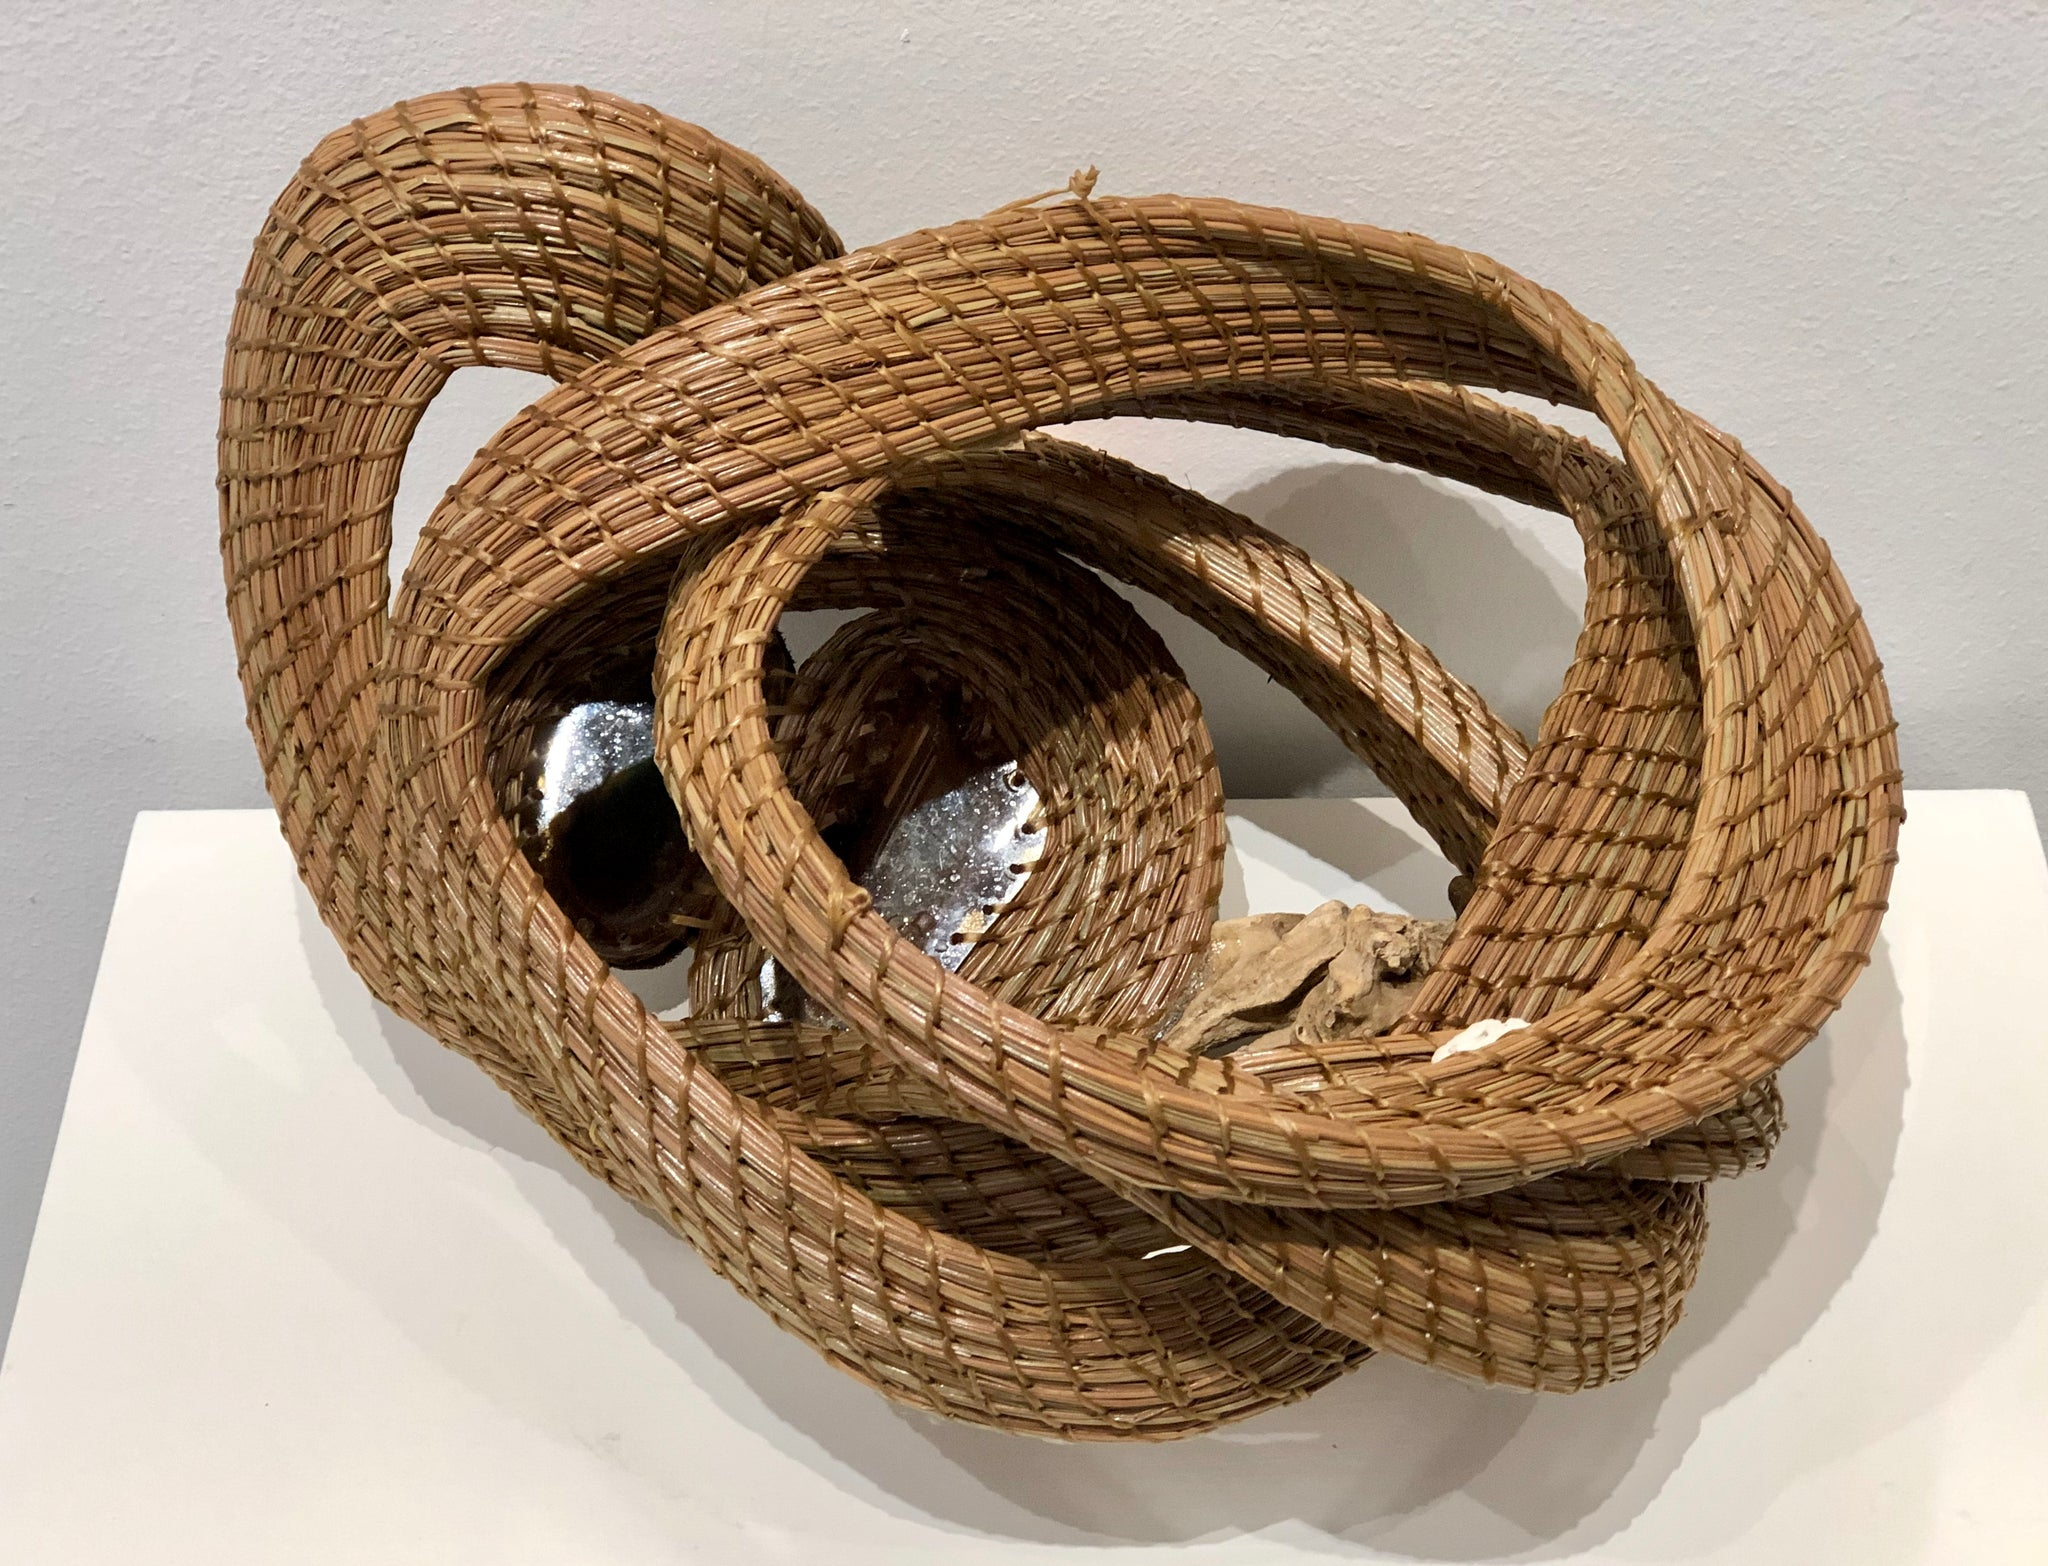 Sculptural Basket